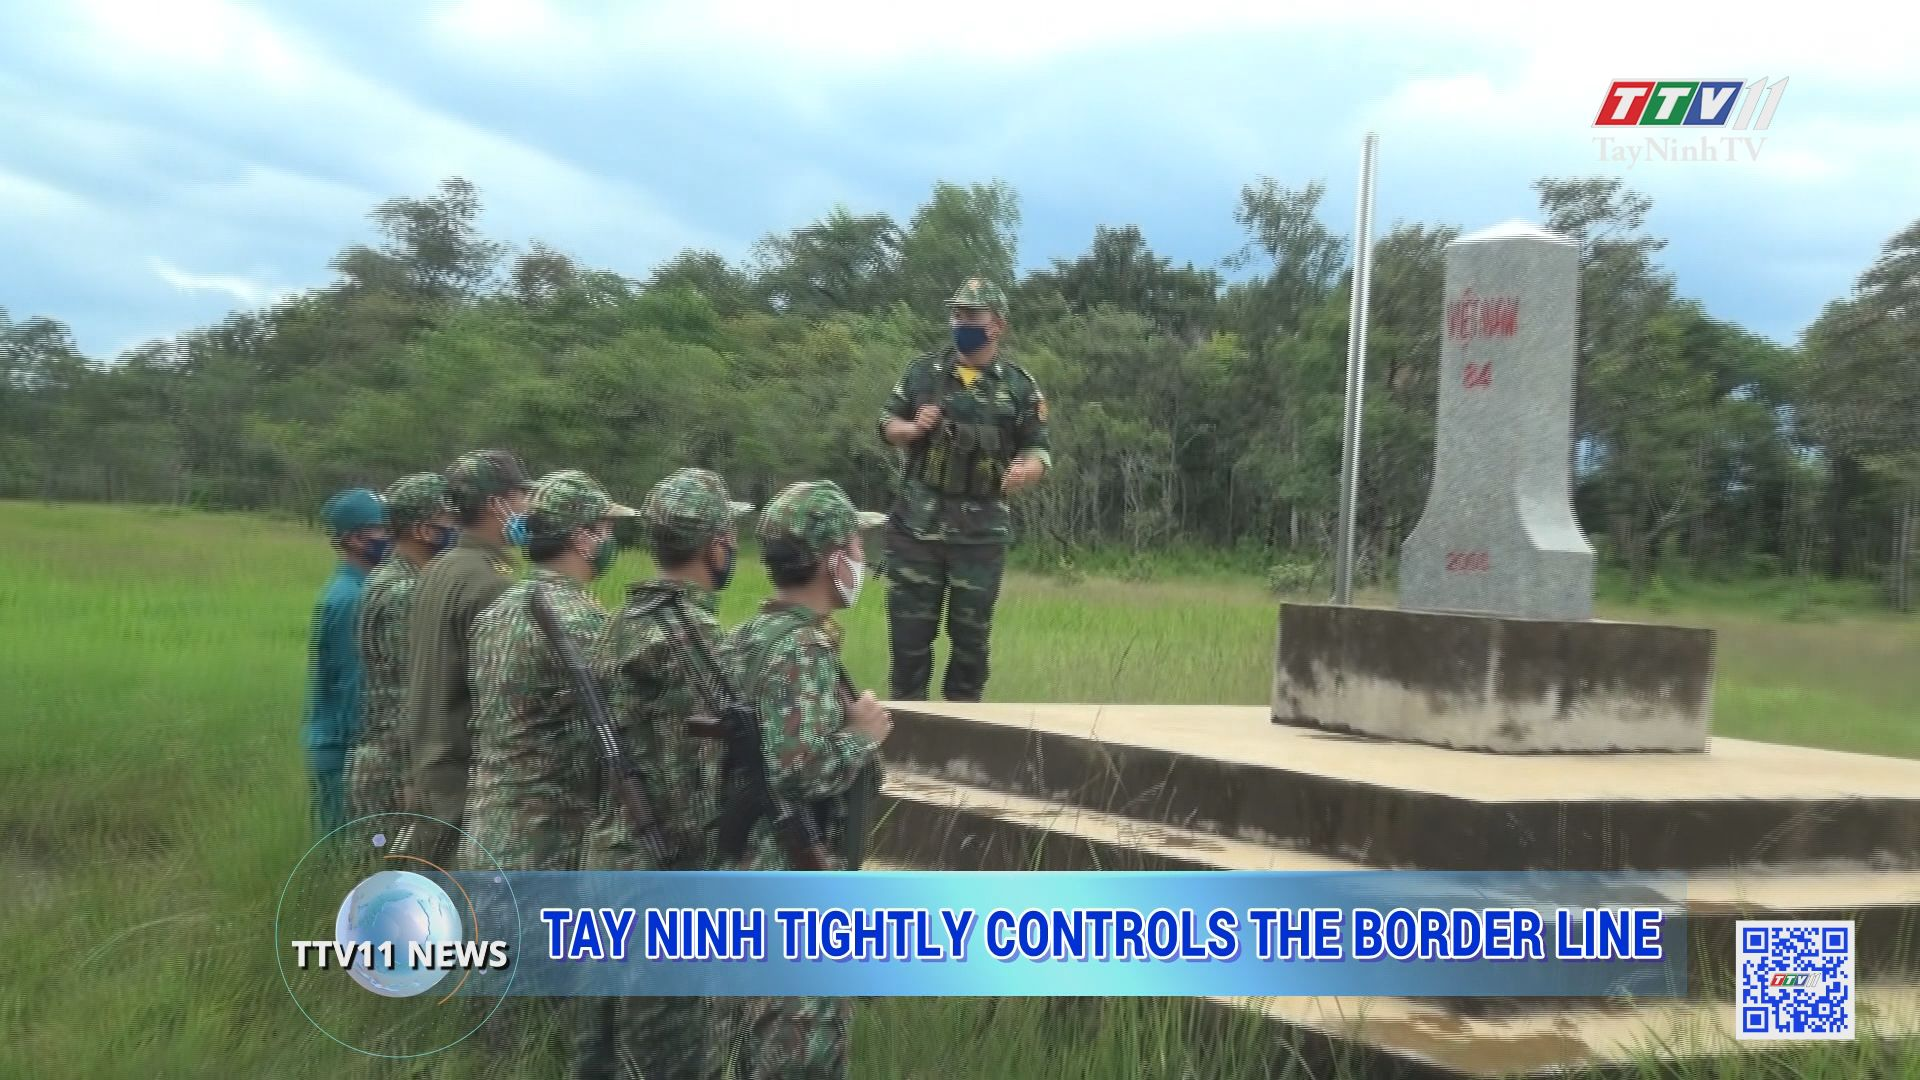 Tay Ninh tightly controls the border line | TTVNEWS | TayNinhTV Today